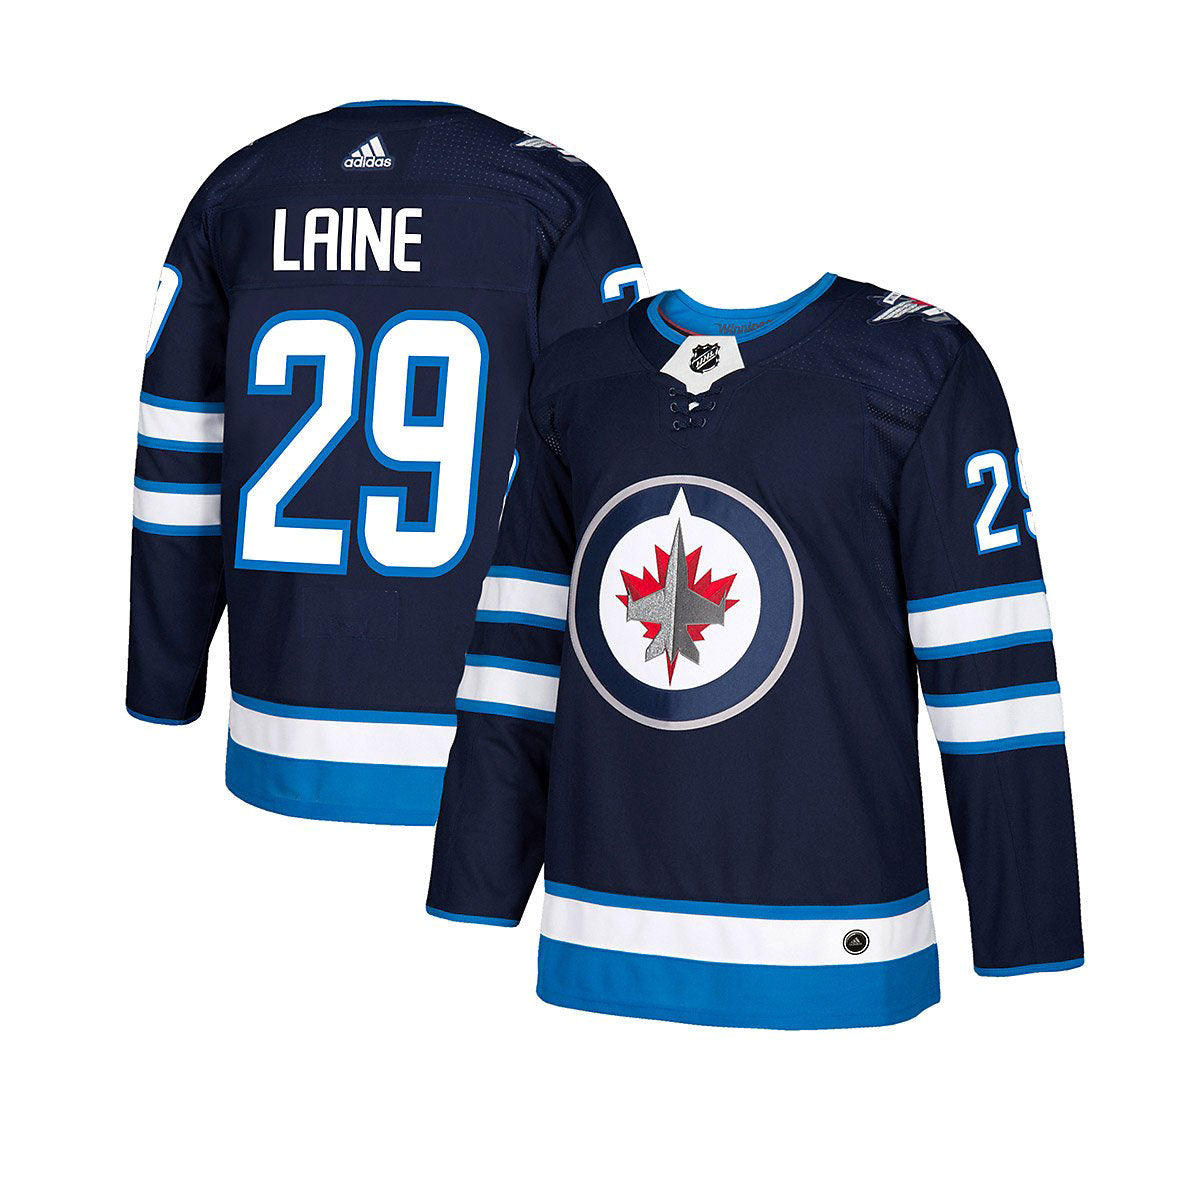 Laine Patrik Jersey Jets Adidas Senior Winnipeg Authentic